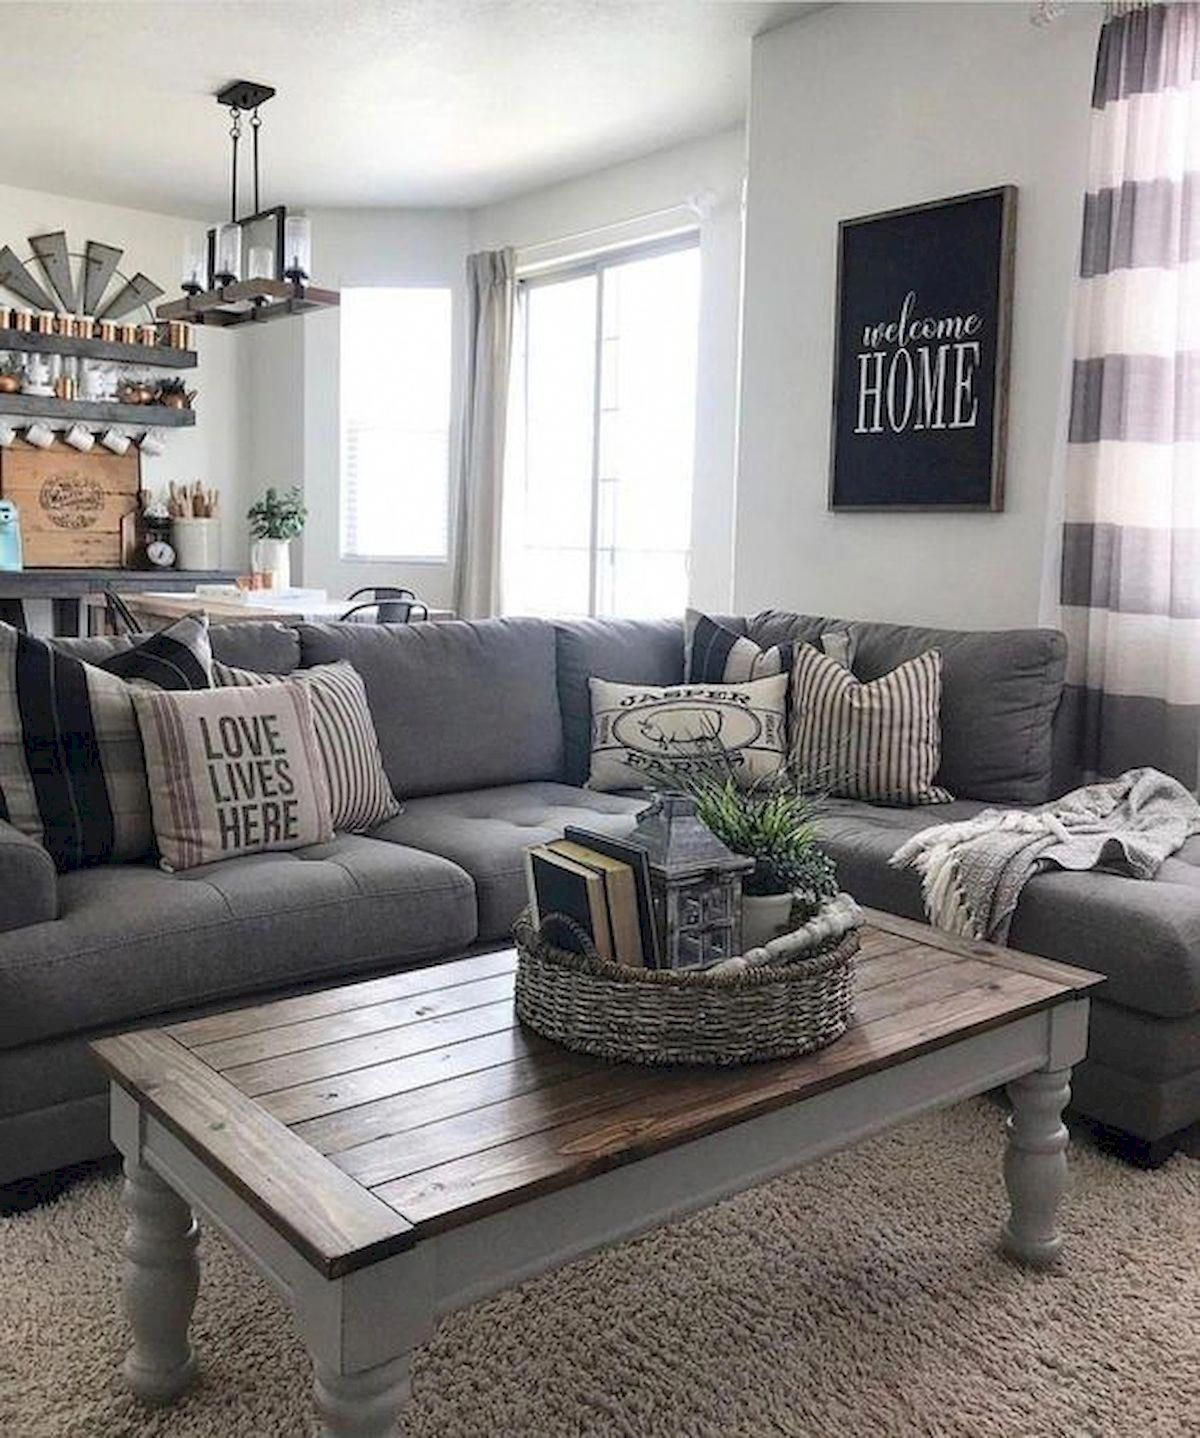 40 Rustic Living Room Ideas To Fashion Your Revamp Around: Cheap Modern Decor - SalePrice:21$ In 2020